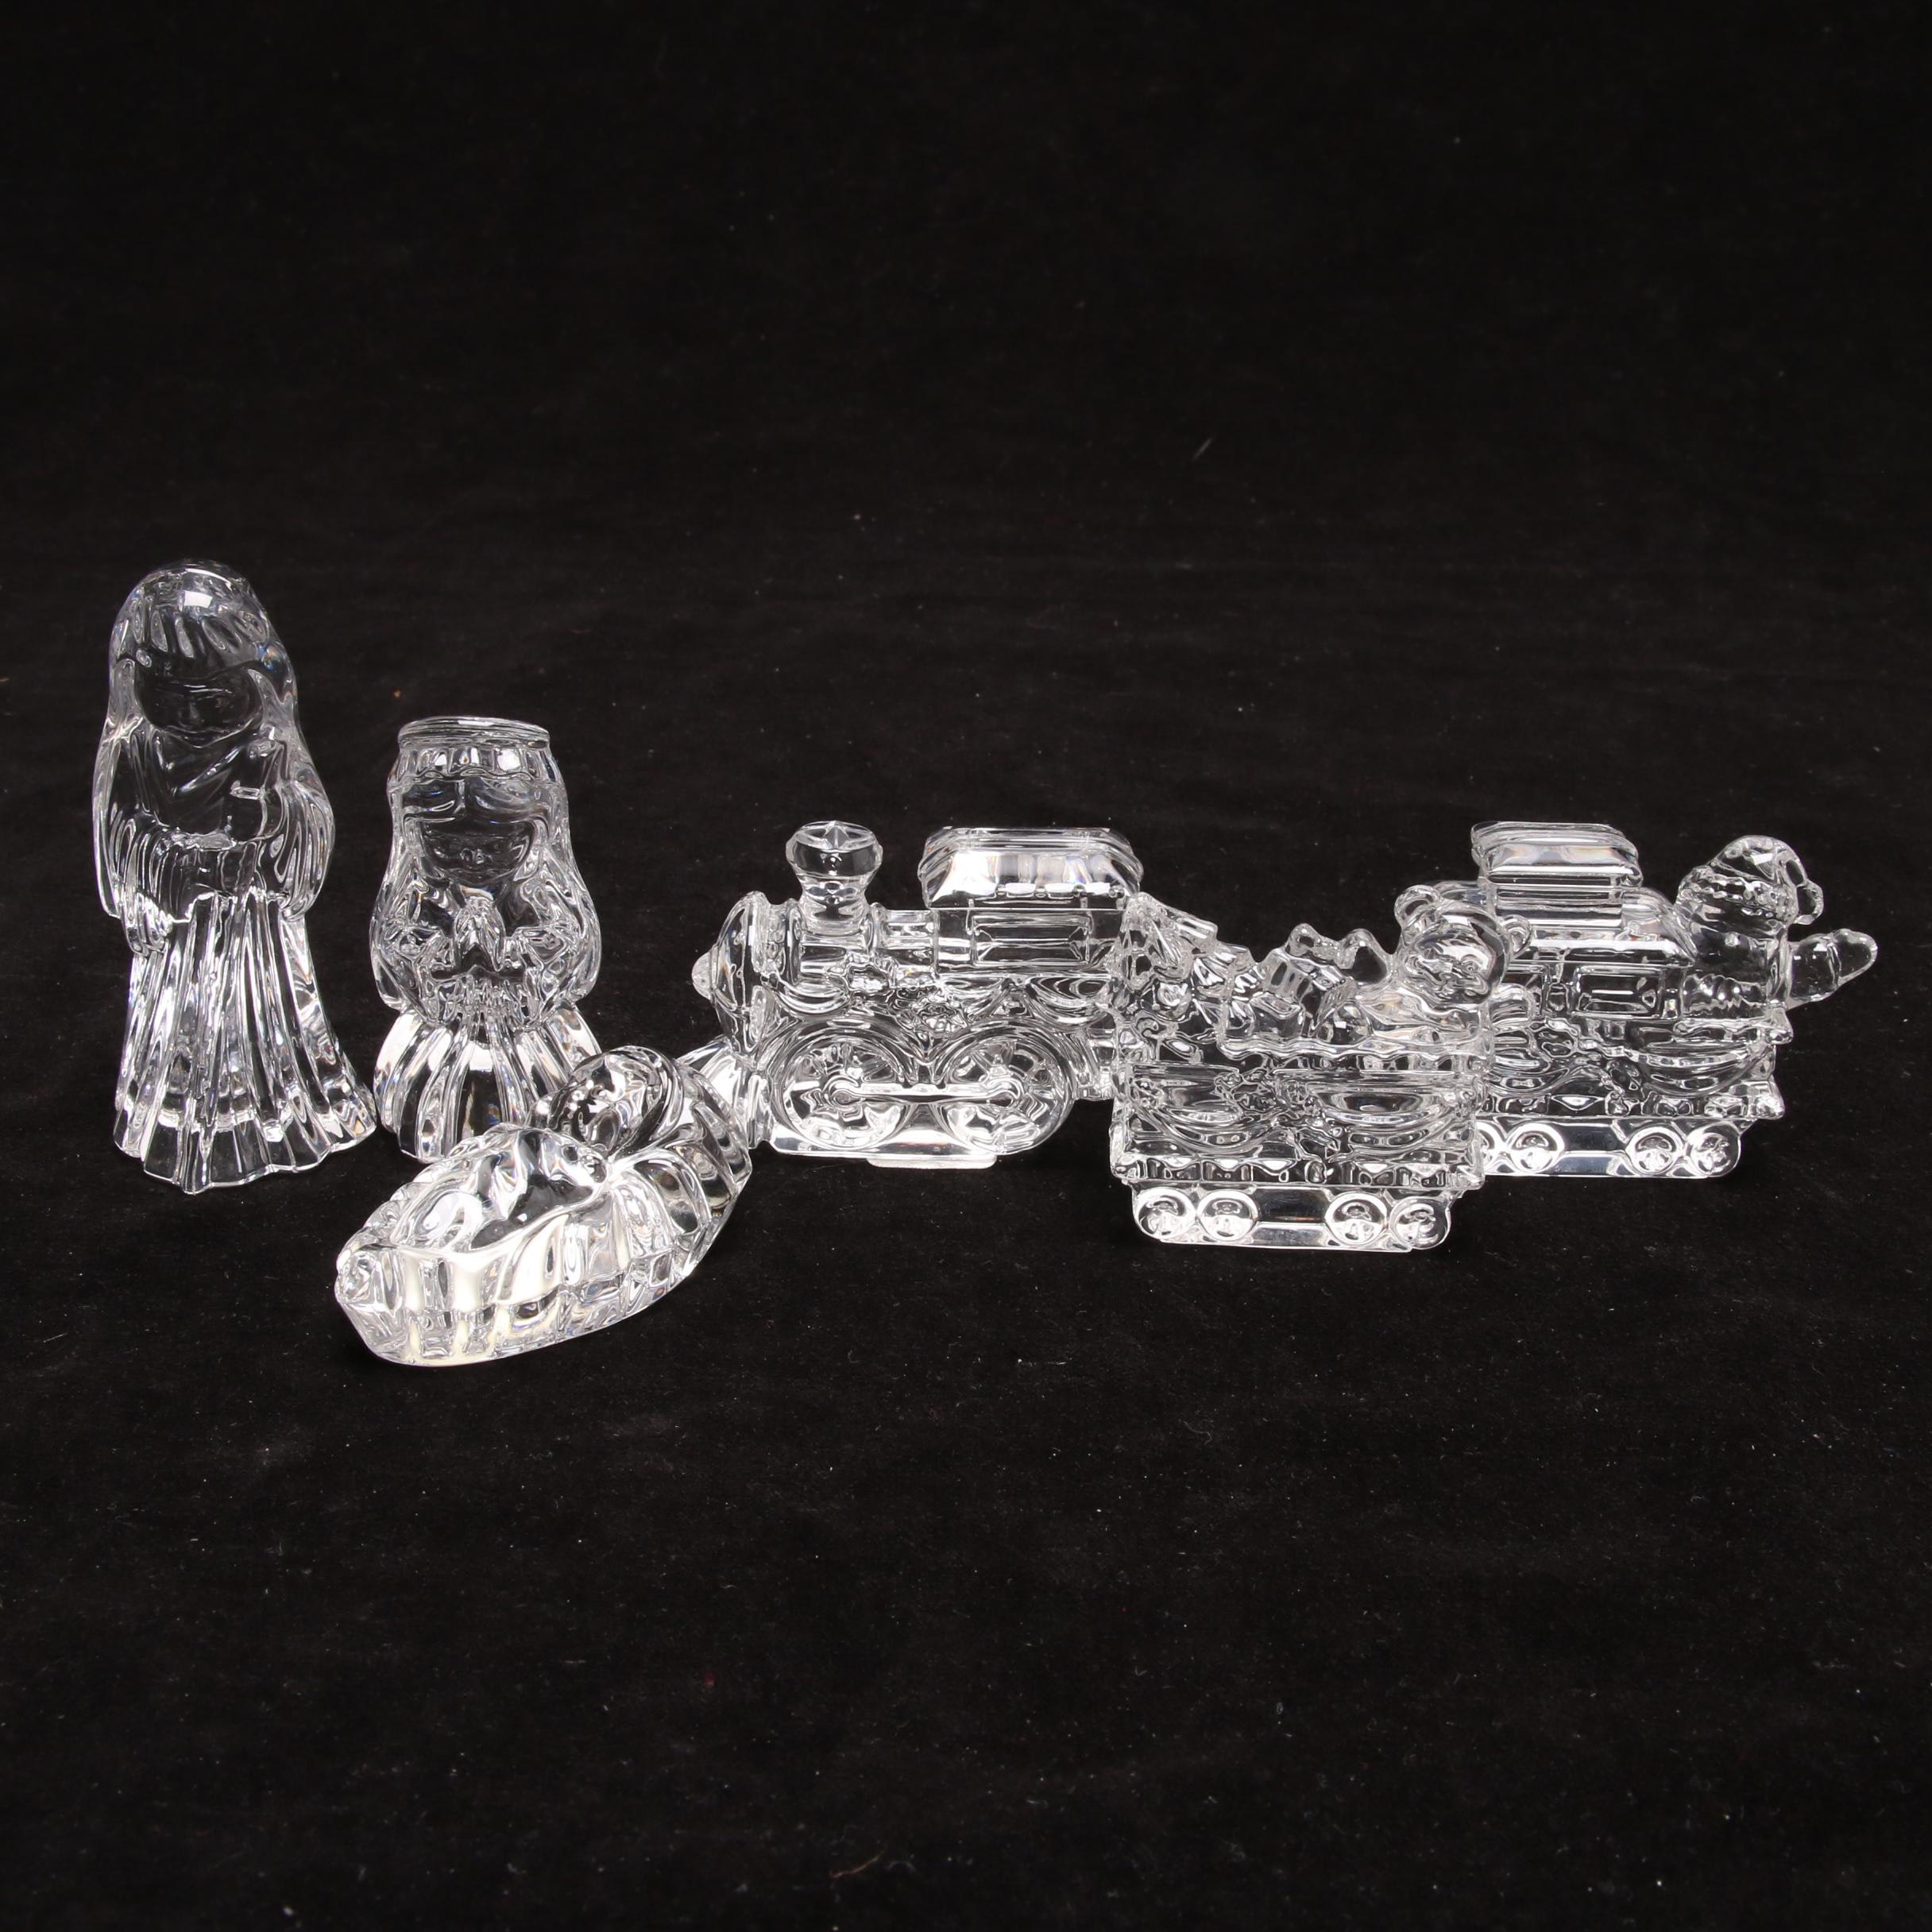 Marquis Waterford Crystal Train and Nativity Collection Figurines